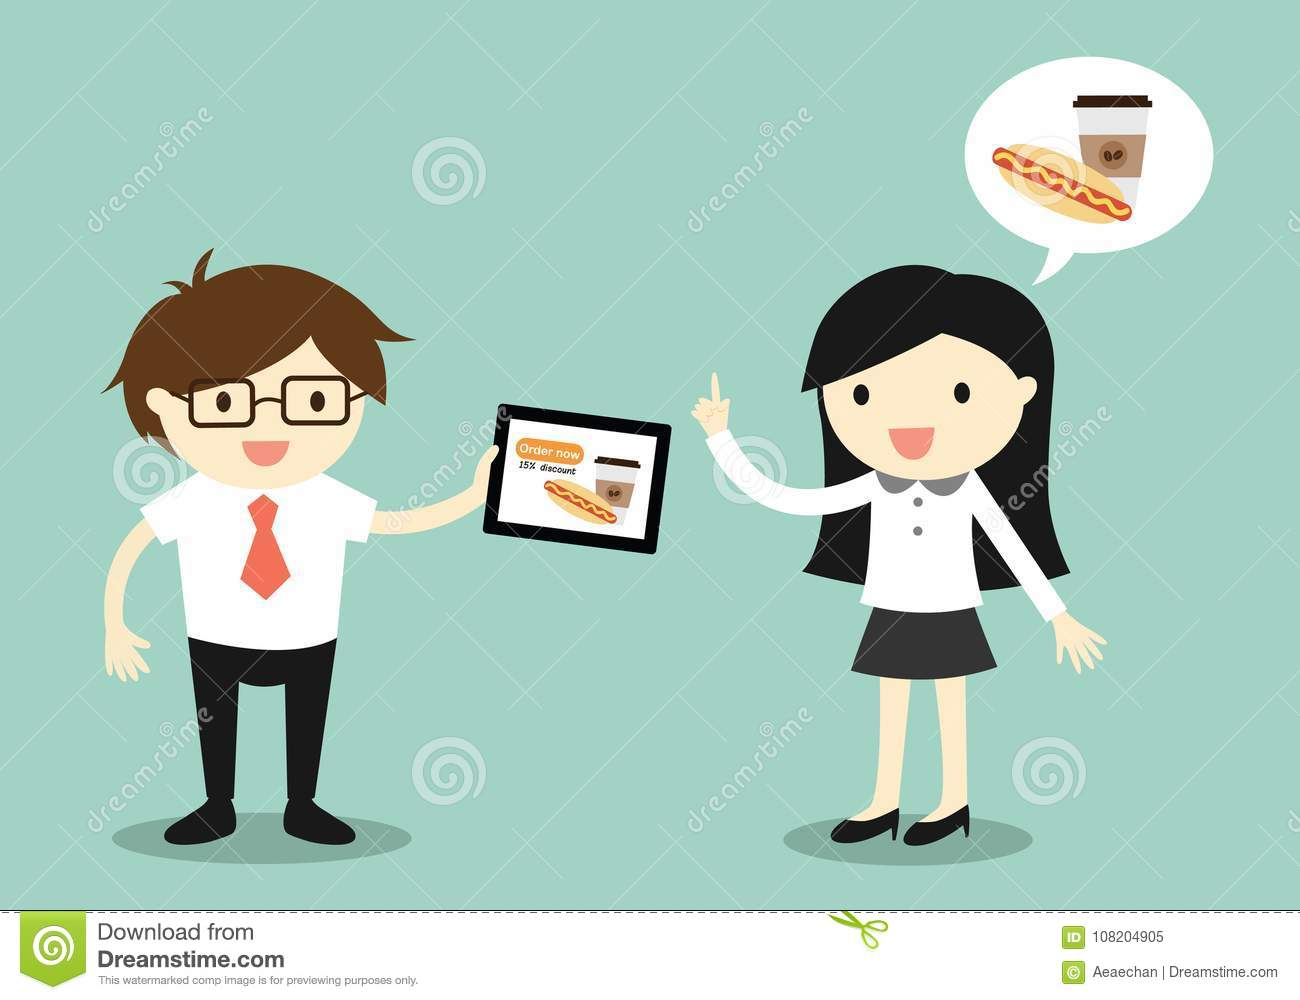 Business concept, Business woman and businessman going to order food online.